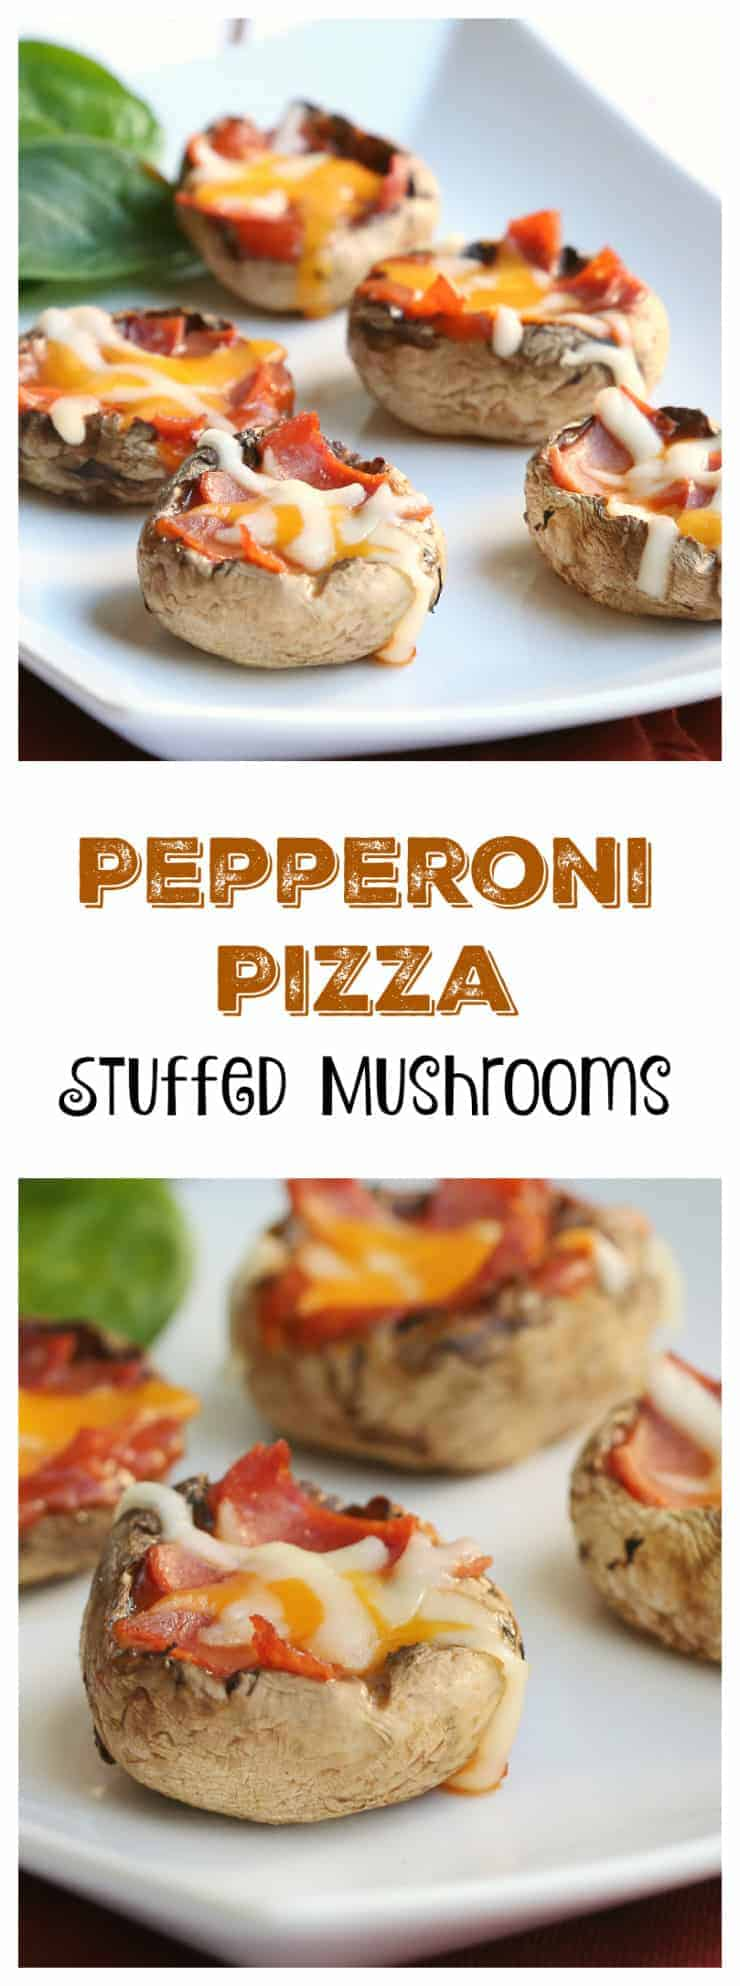 Pepperoni Pizza Stuffed Mushrooms Appetizer Recipe